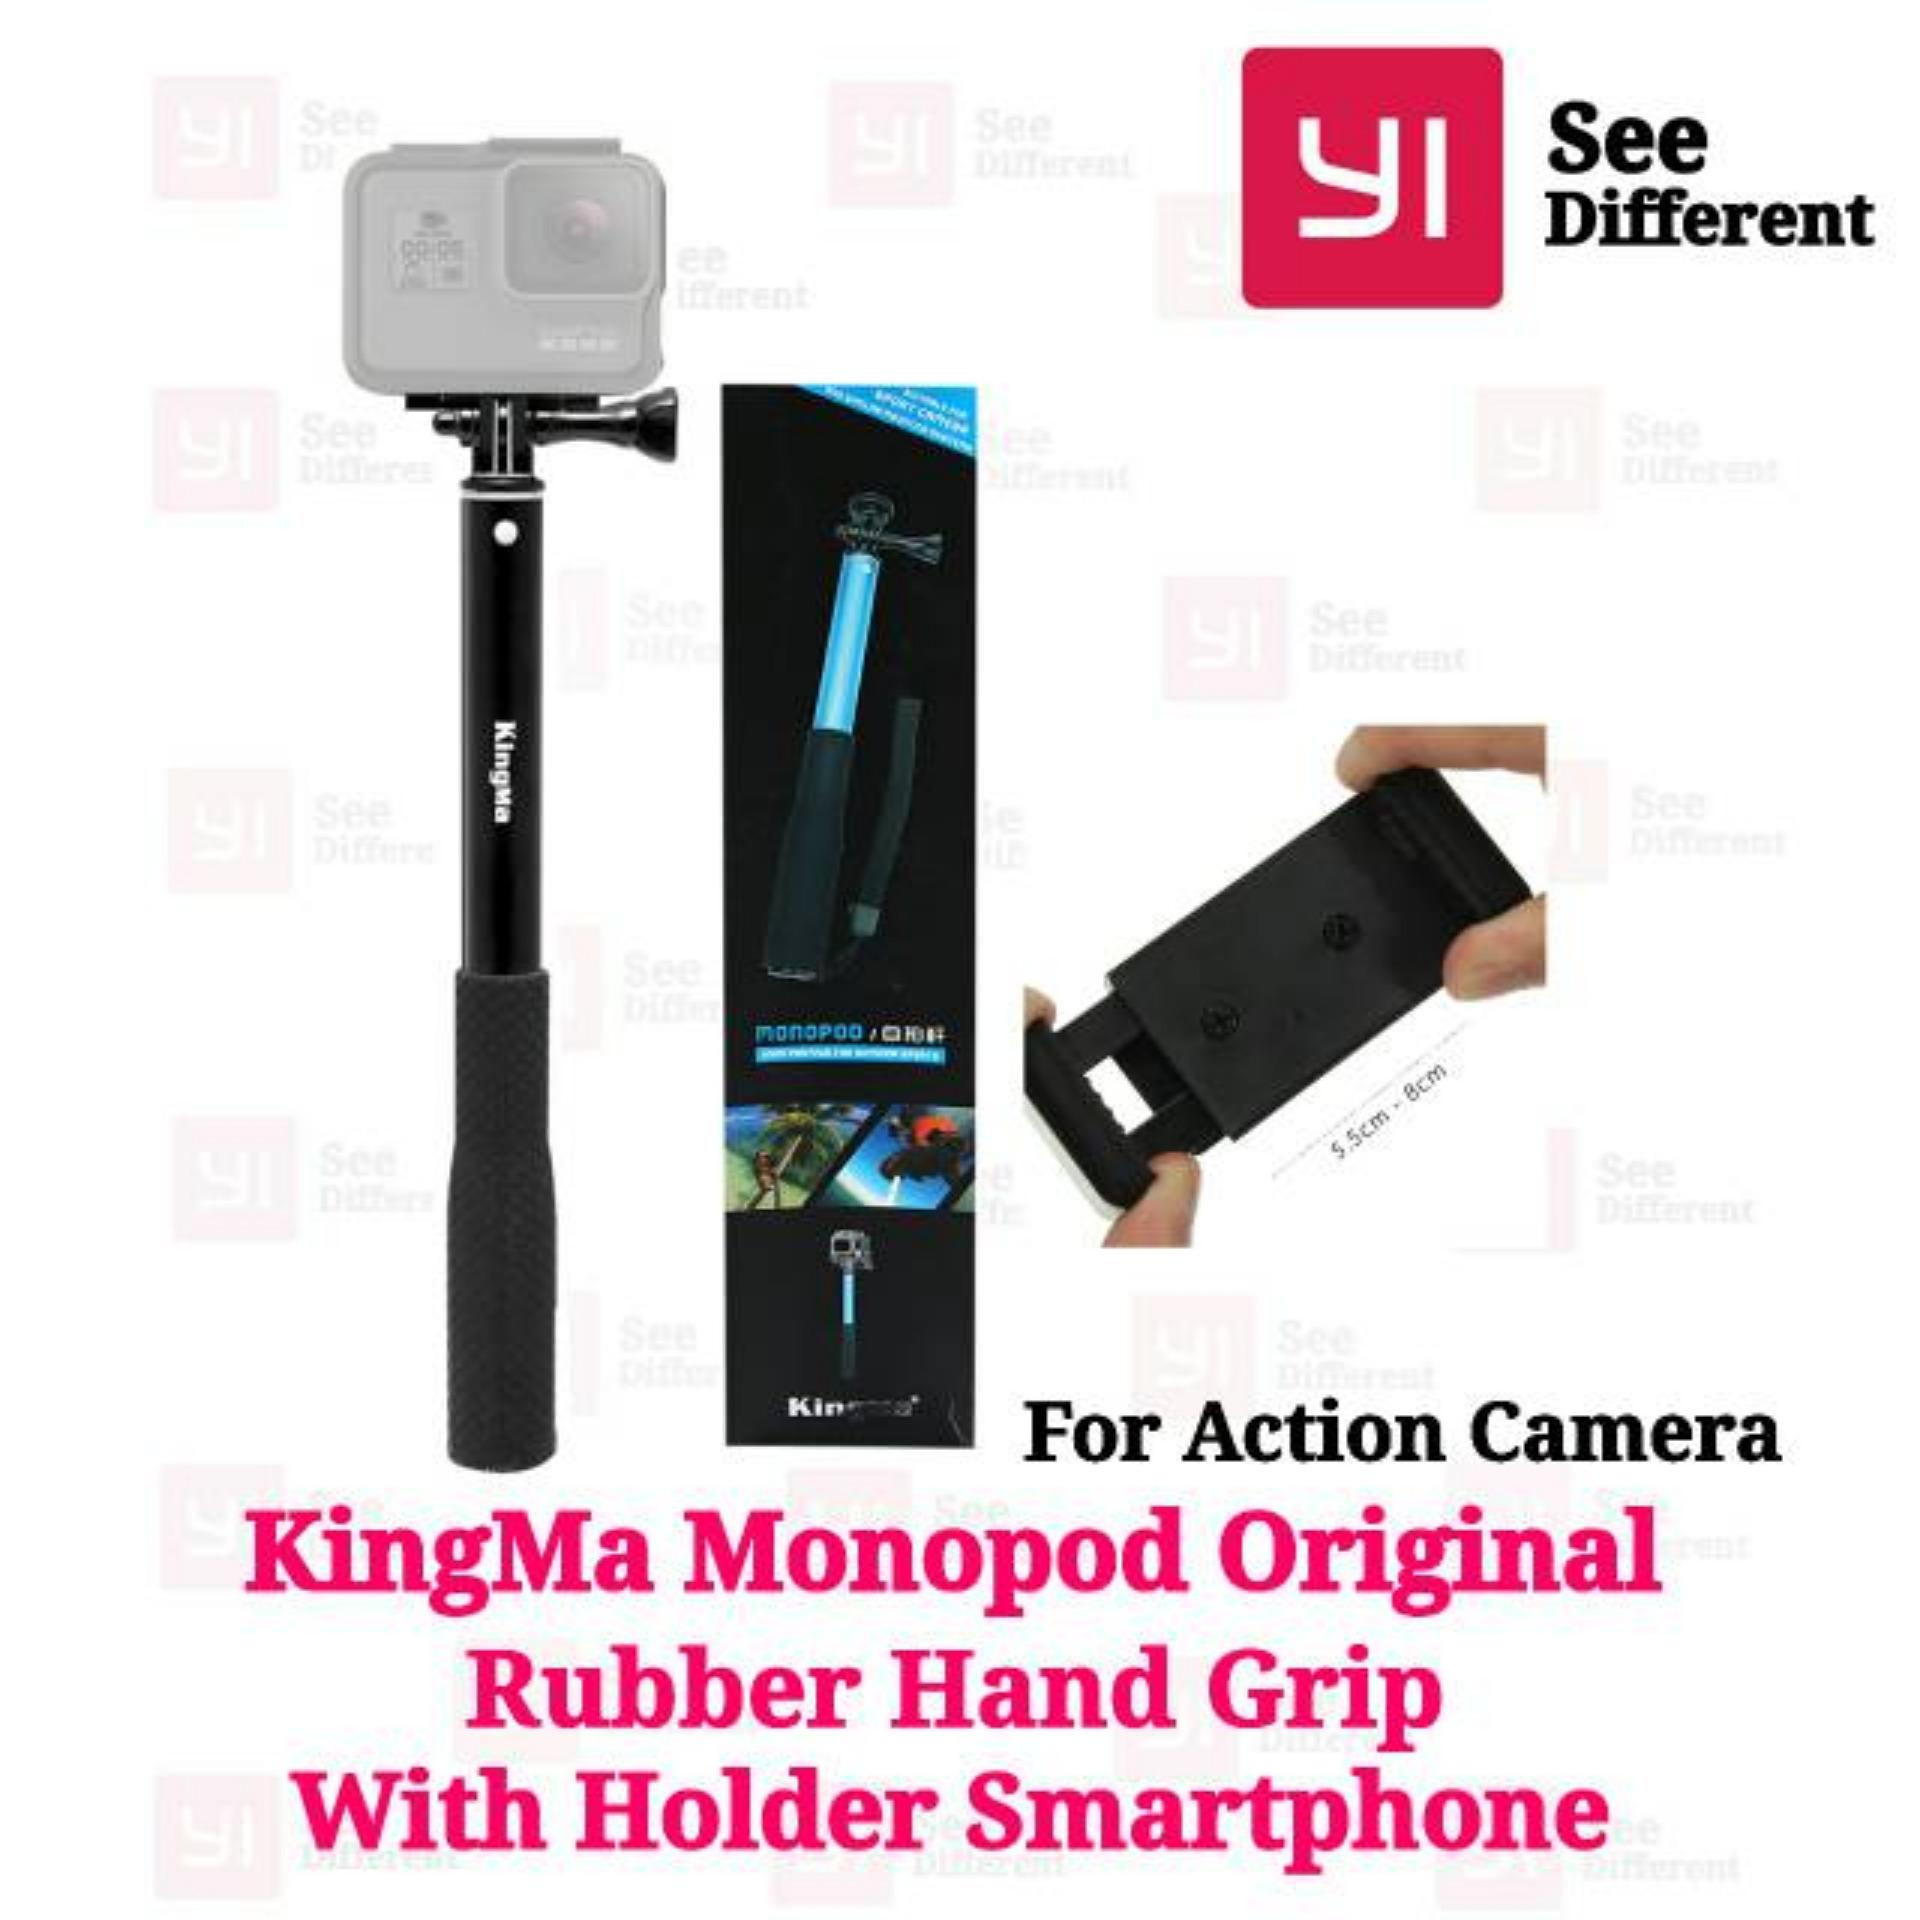 Online Murah Kingma Monopod Original For Action Cam Seperti Tongsis Attanta Universal Clamp Holder U Hp